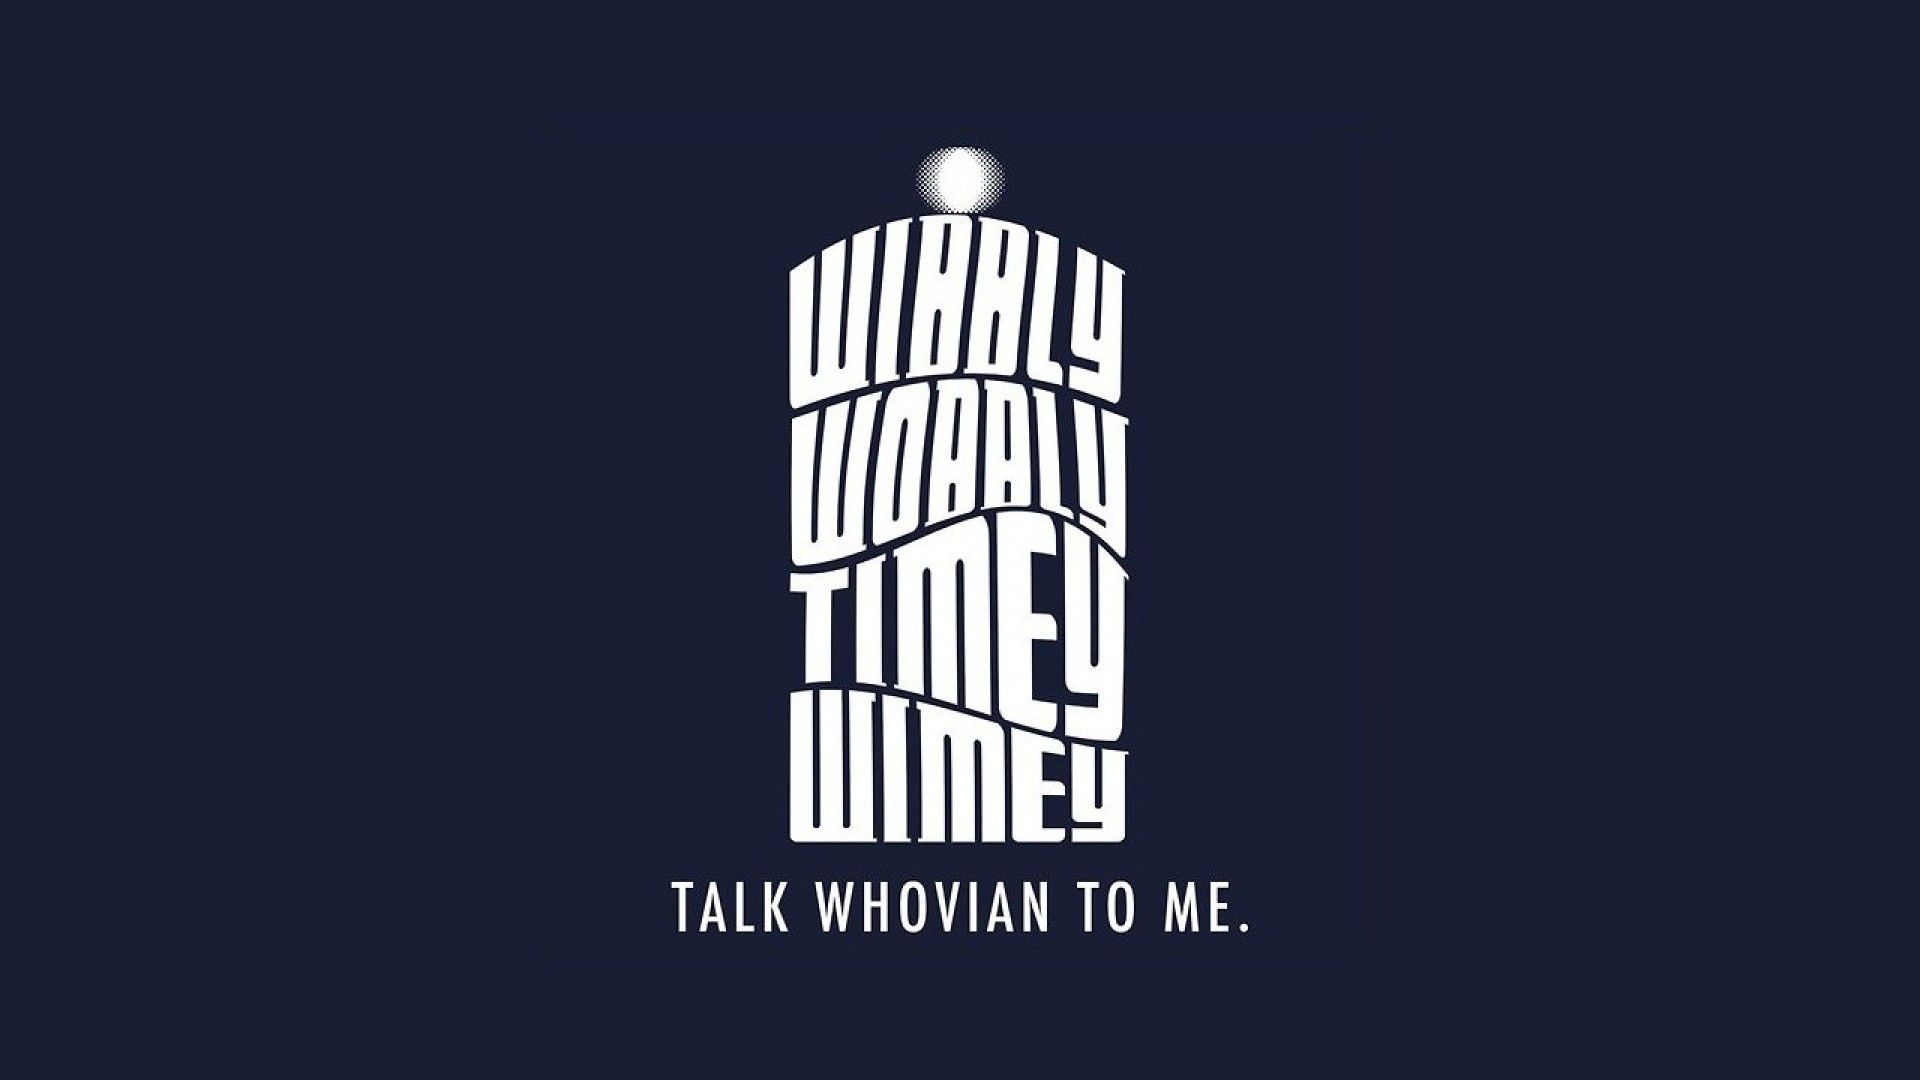 doctor who wallpaper desktop backgrounds 1920x1080px ~ dr who